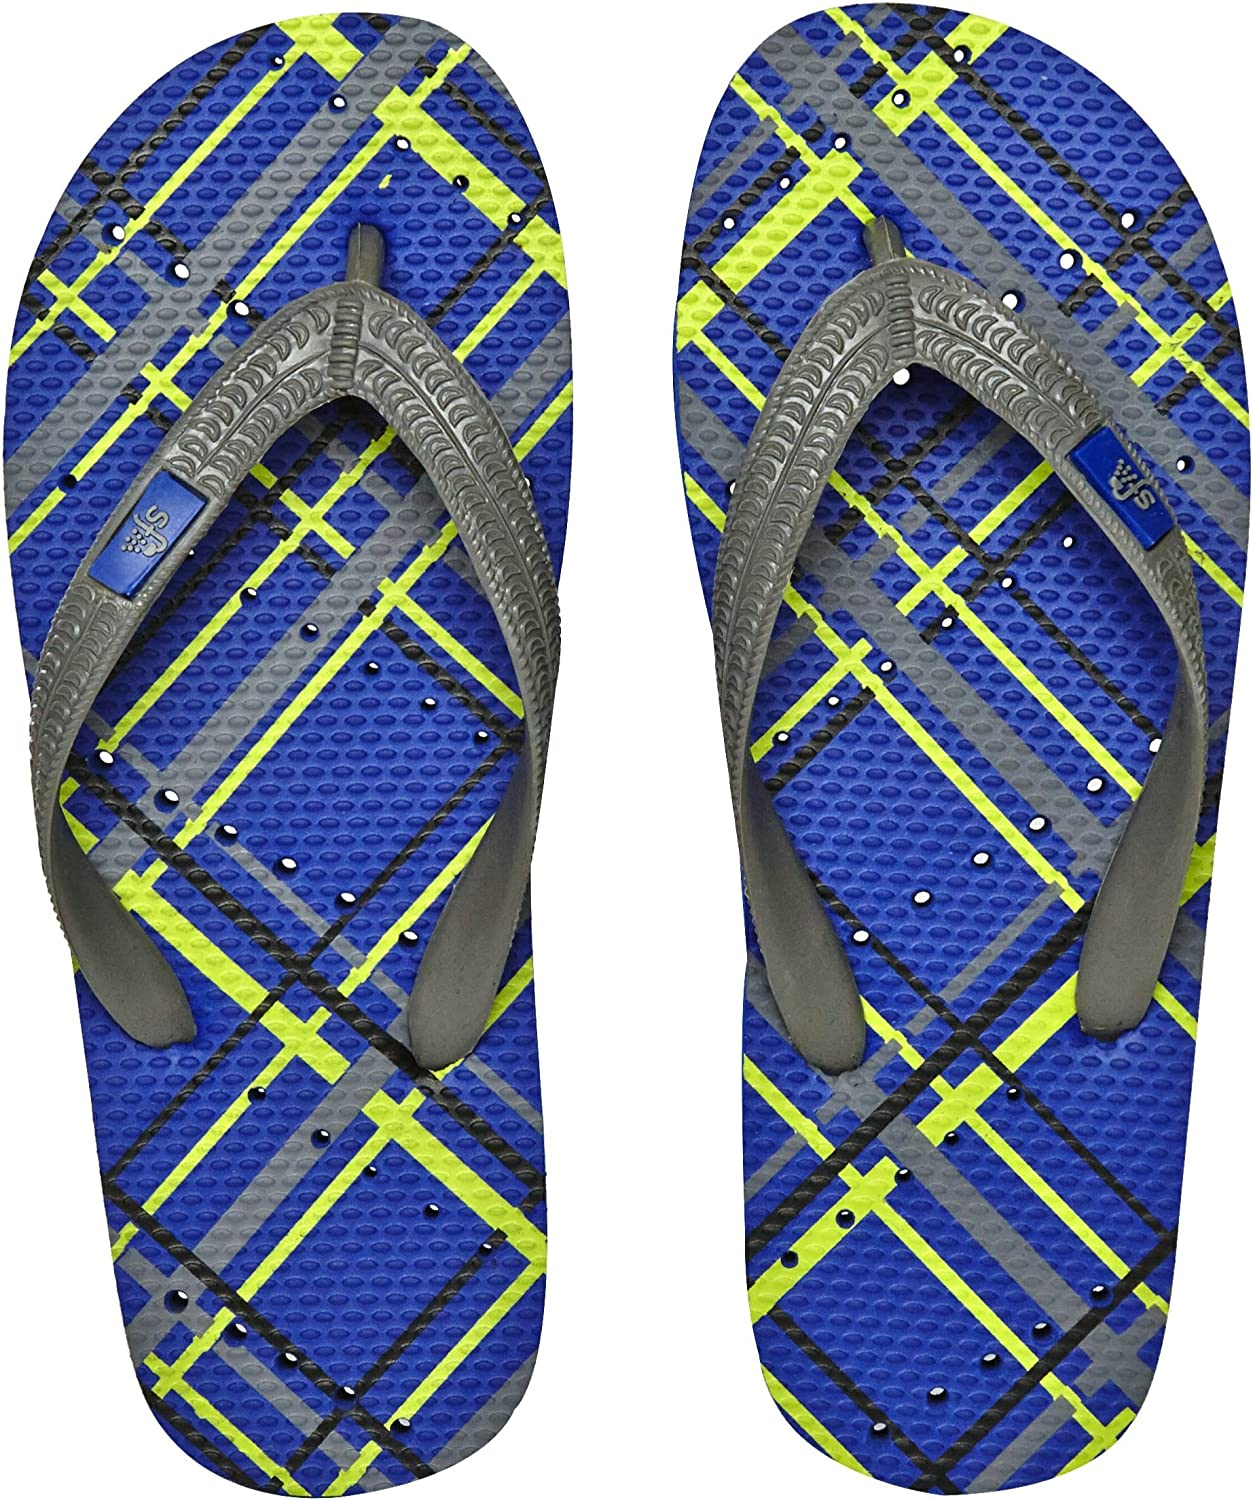 Showaflops Boys' Antimicrobial Shower & Water Sandals for Pool, Beach, Camp and Gym - bluee Plaid 5 6